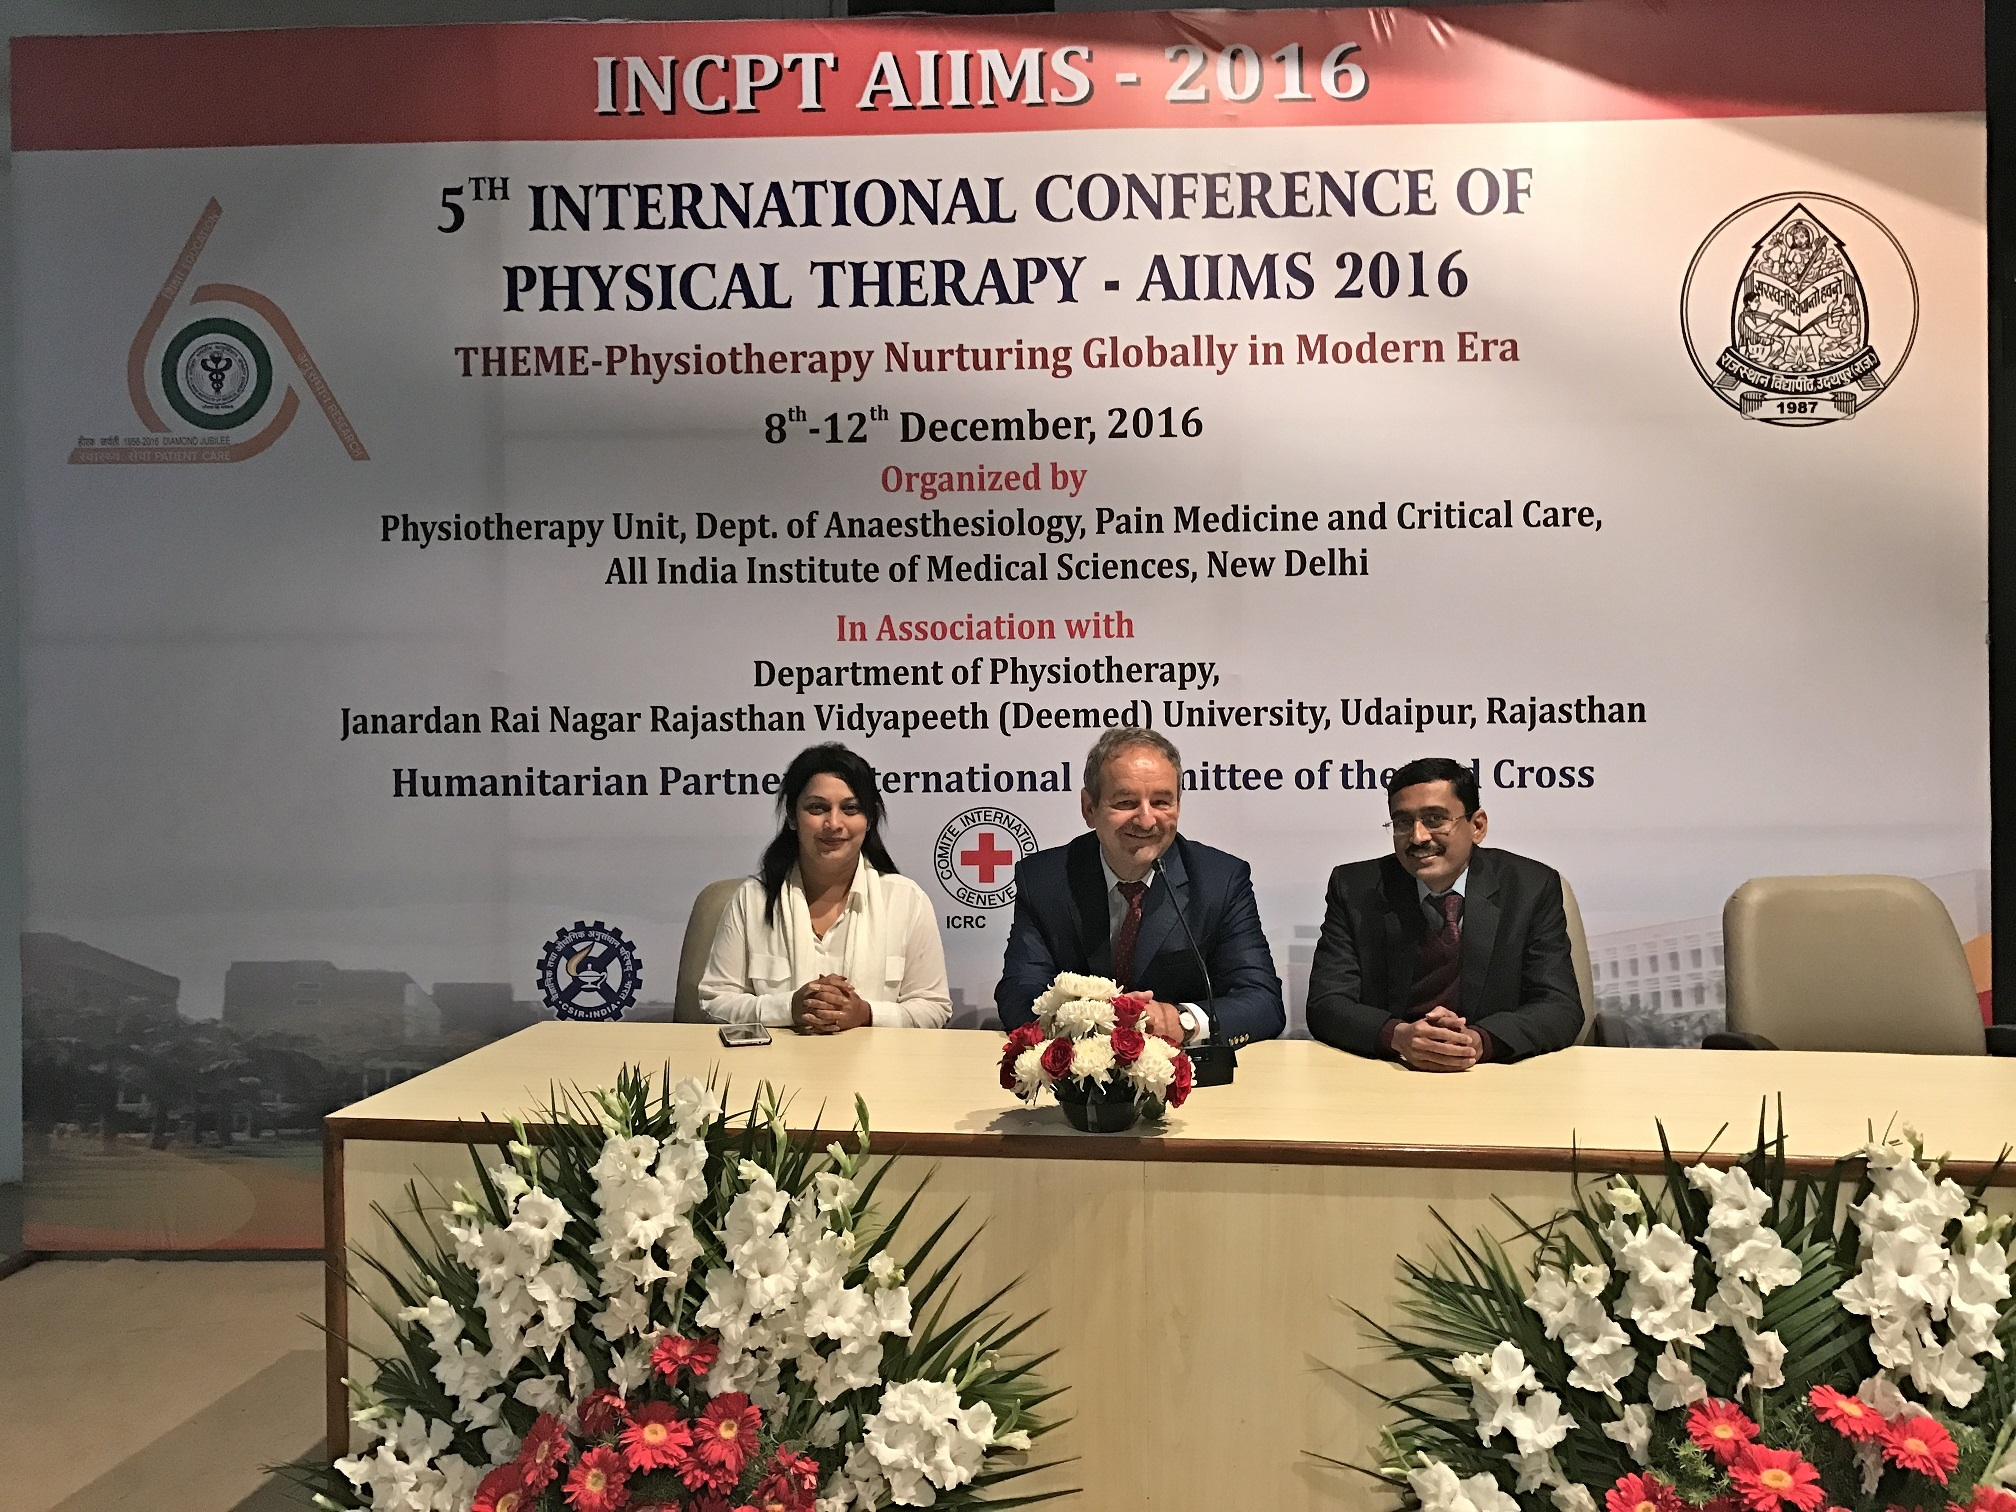 Dr. Meenakshi Pandit, Dr. Ulrich Randoll and Dr. Sandeep Bhagwat answered questions of therapists and doctors